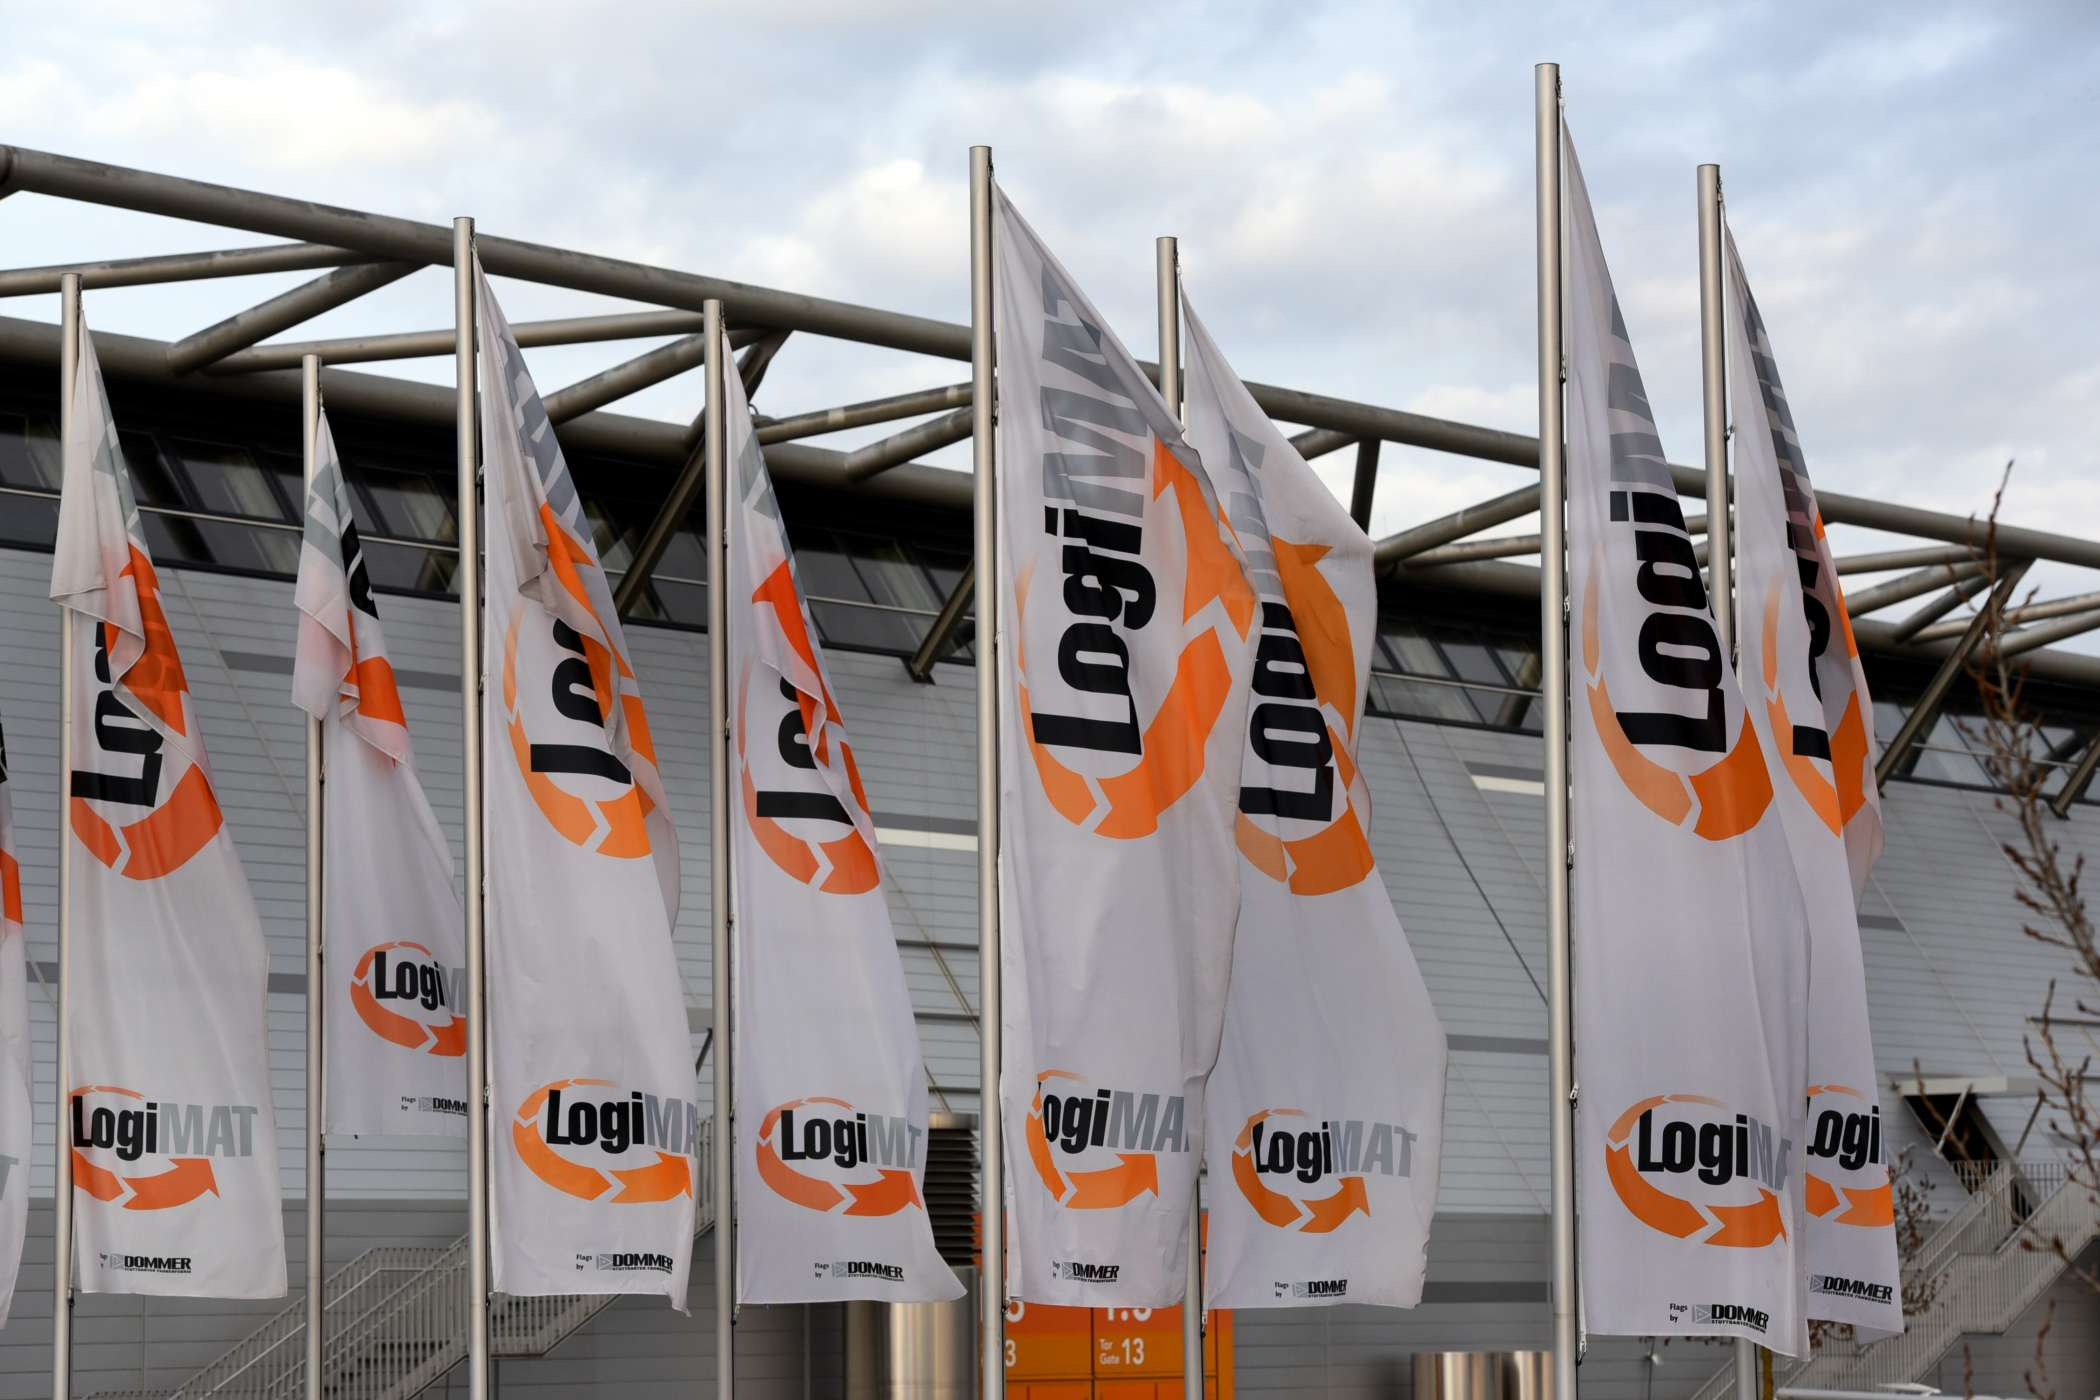 Platz 3. Intralogistik-Fachmesse – LogiMAT 2021 in Stuttgart findet nicht statt: https://logistik-heute.de/news/intralogistik-fachmesse-logimat-2021-stu… (Foto: EUROPEXPO)